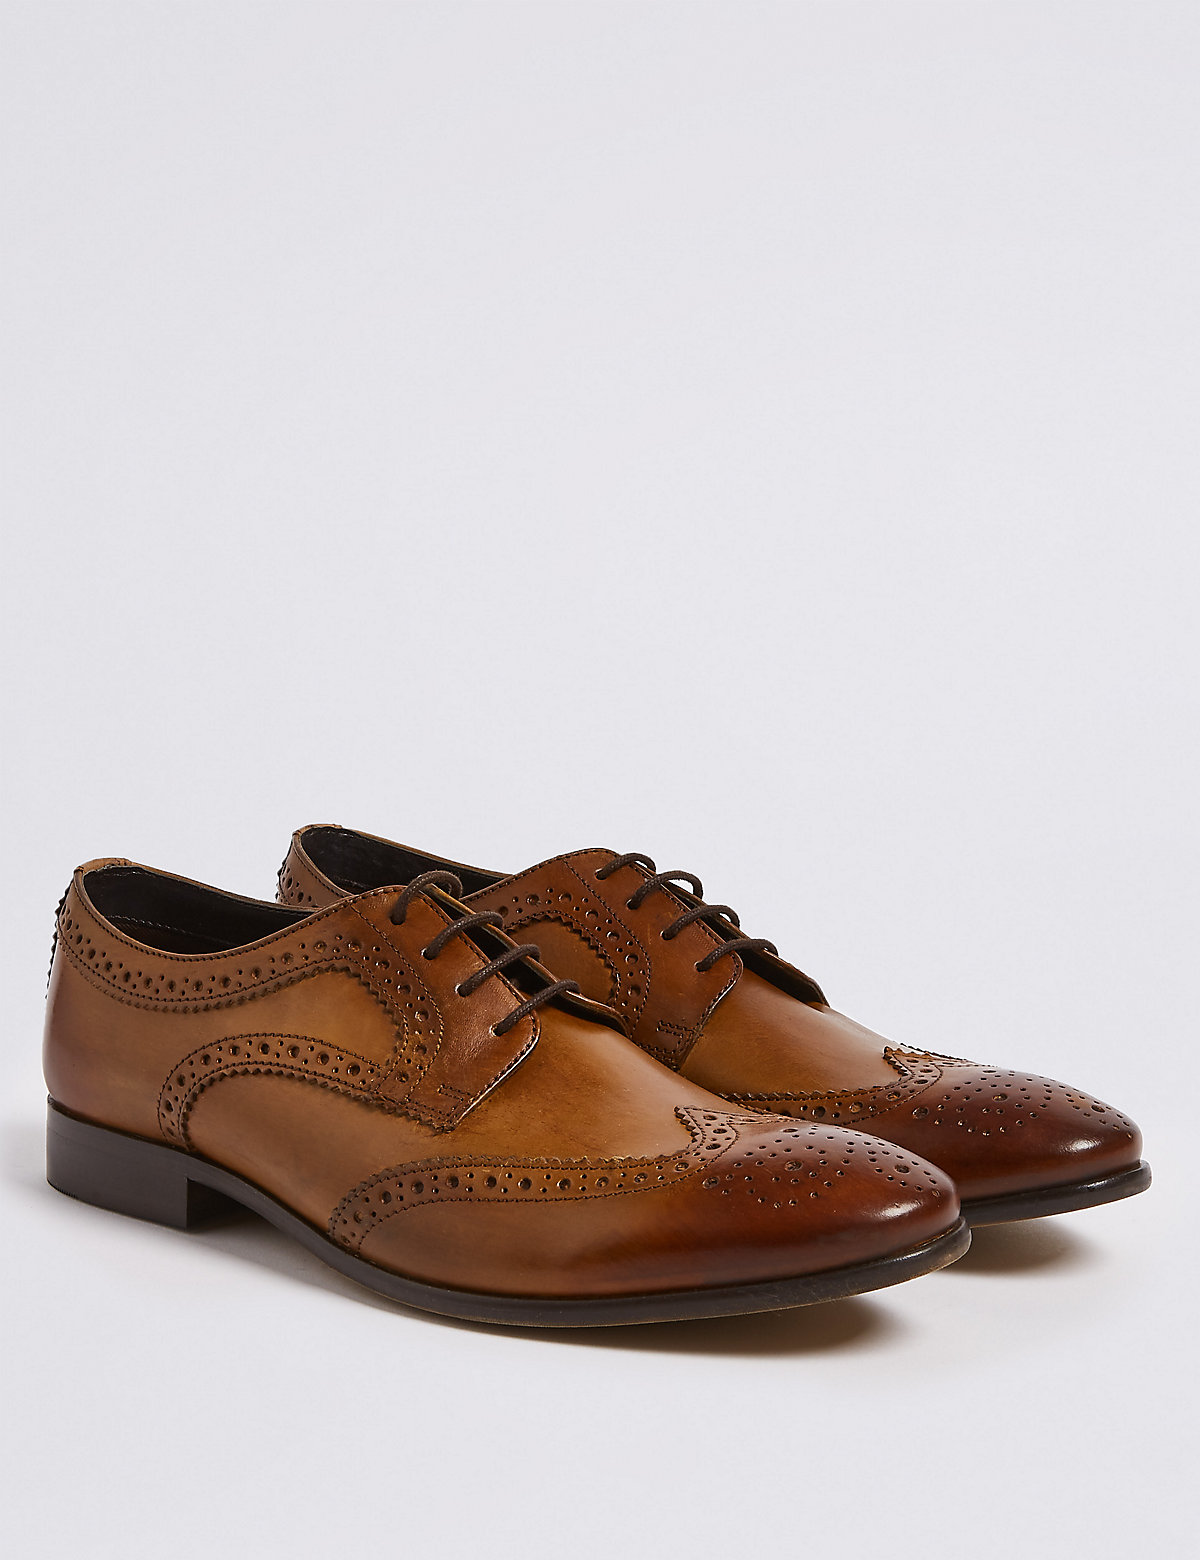 Marks & Spencer Chestnut Leather Almond Toe Brogue Shoes